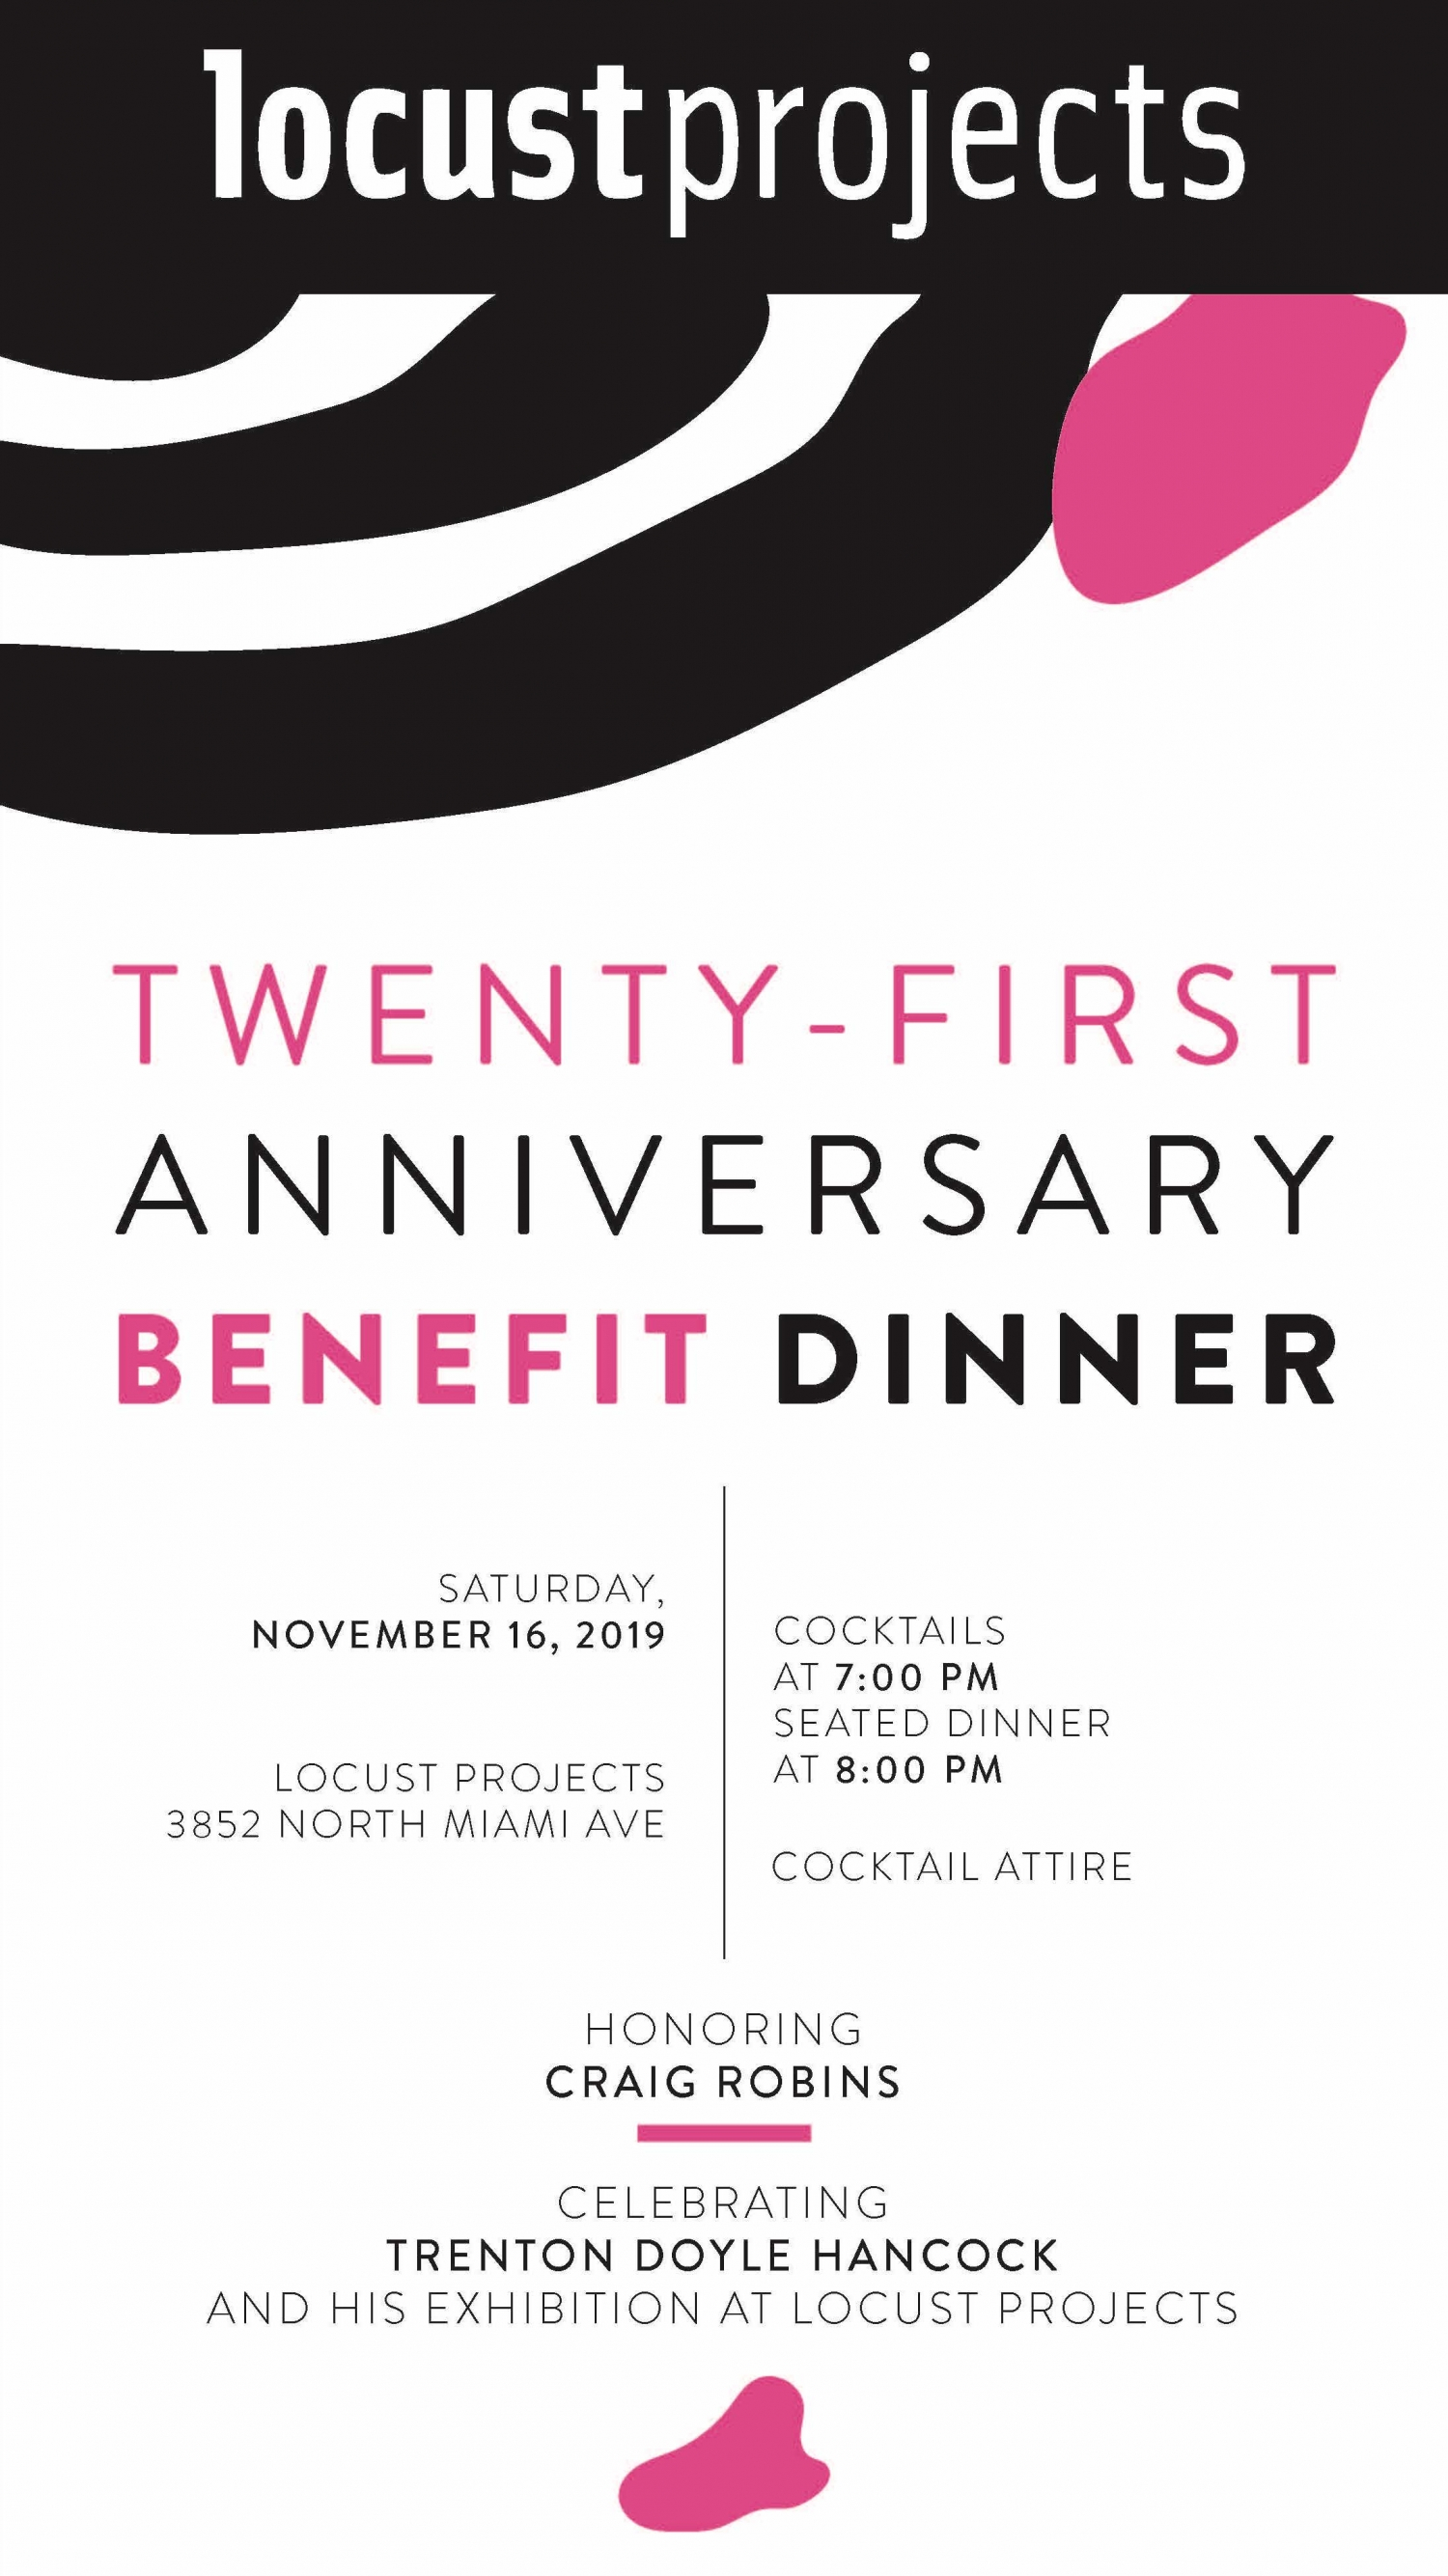 21st Anniversary benefit Dinner